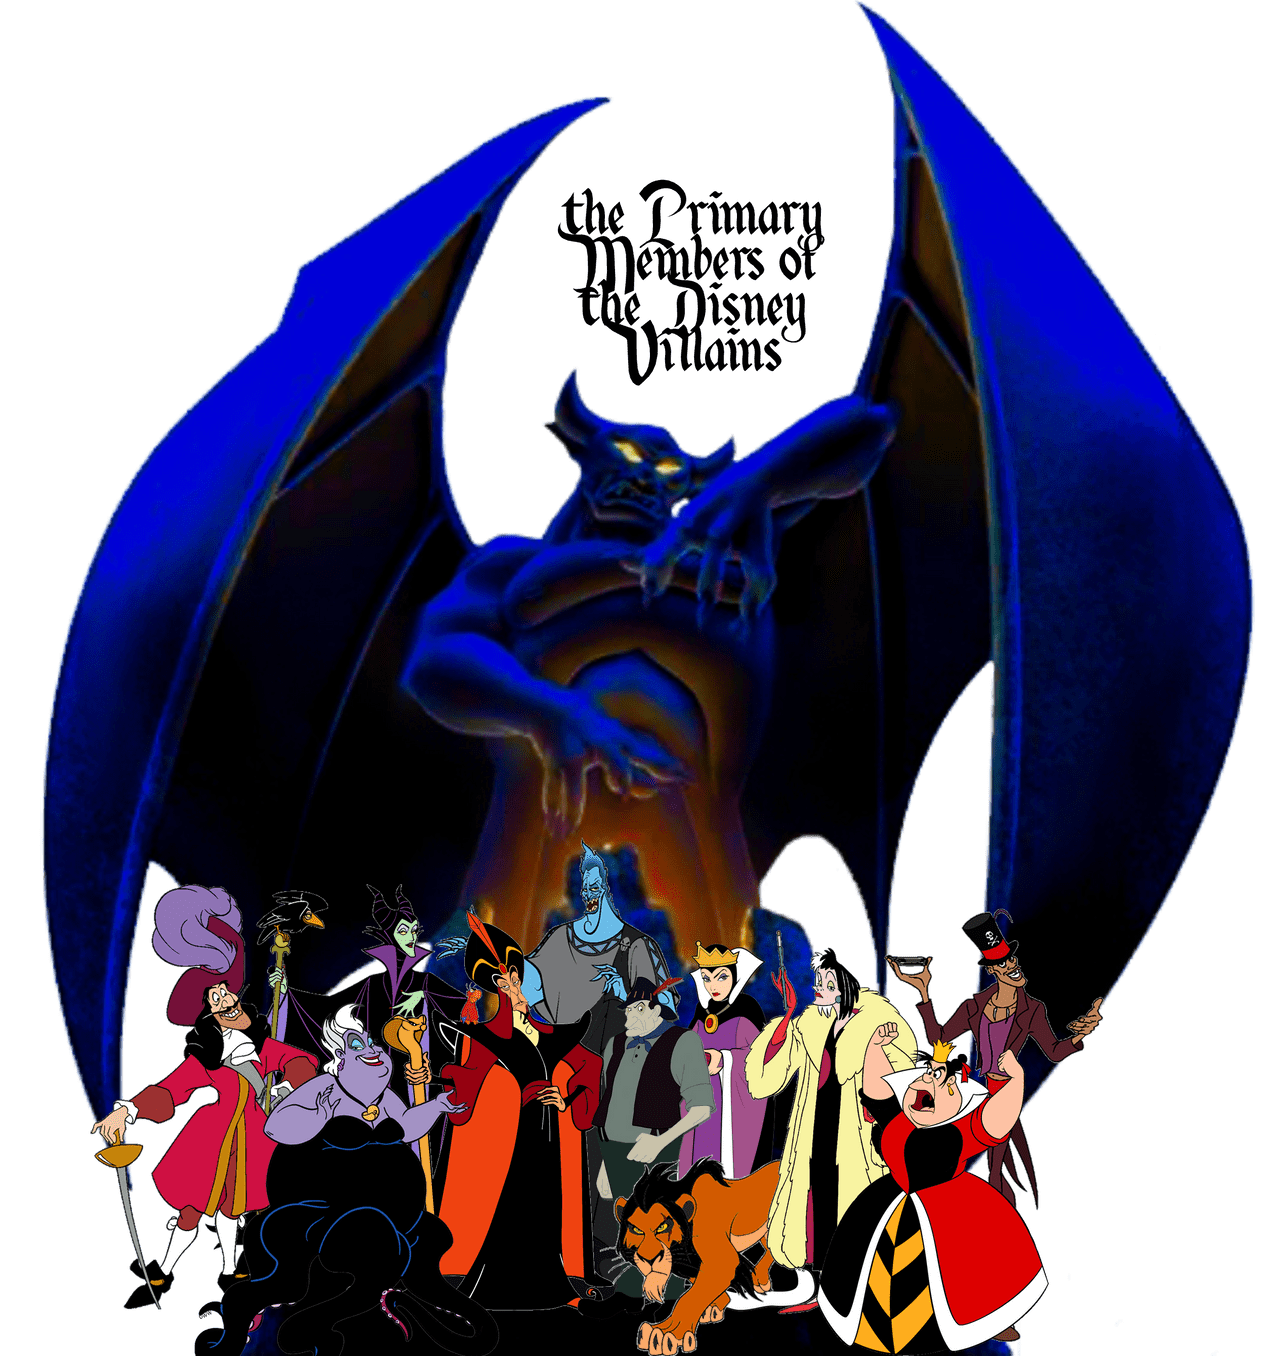 the_primary_members_of_the_disney_villains_by_conthauberger_dd9e3nl-fullview.png